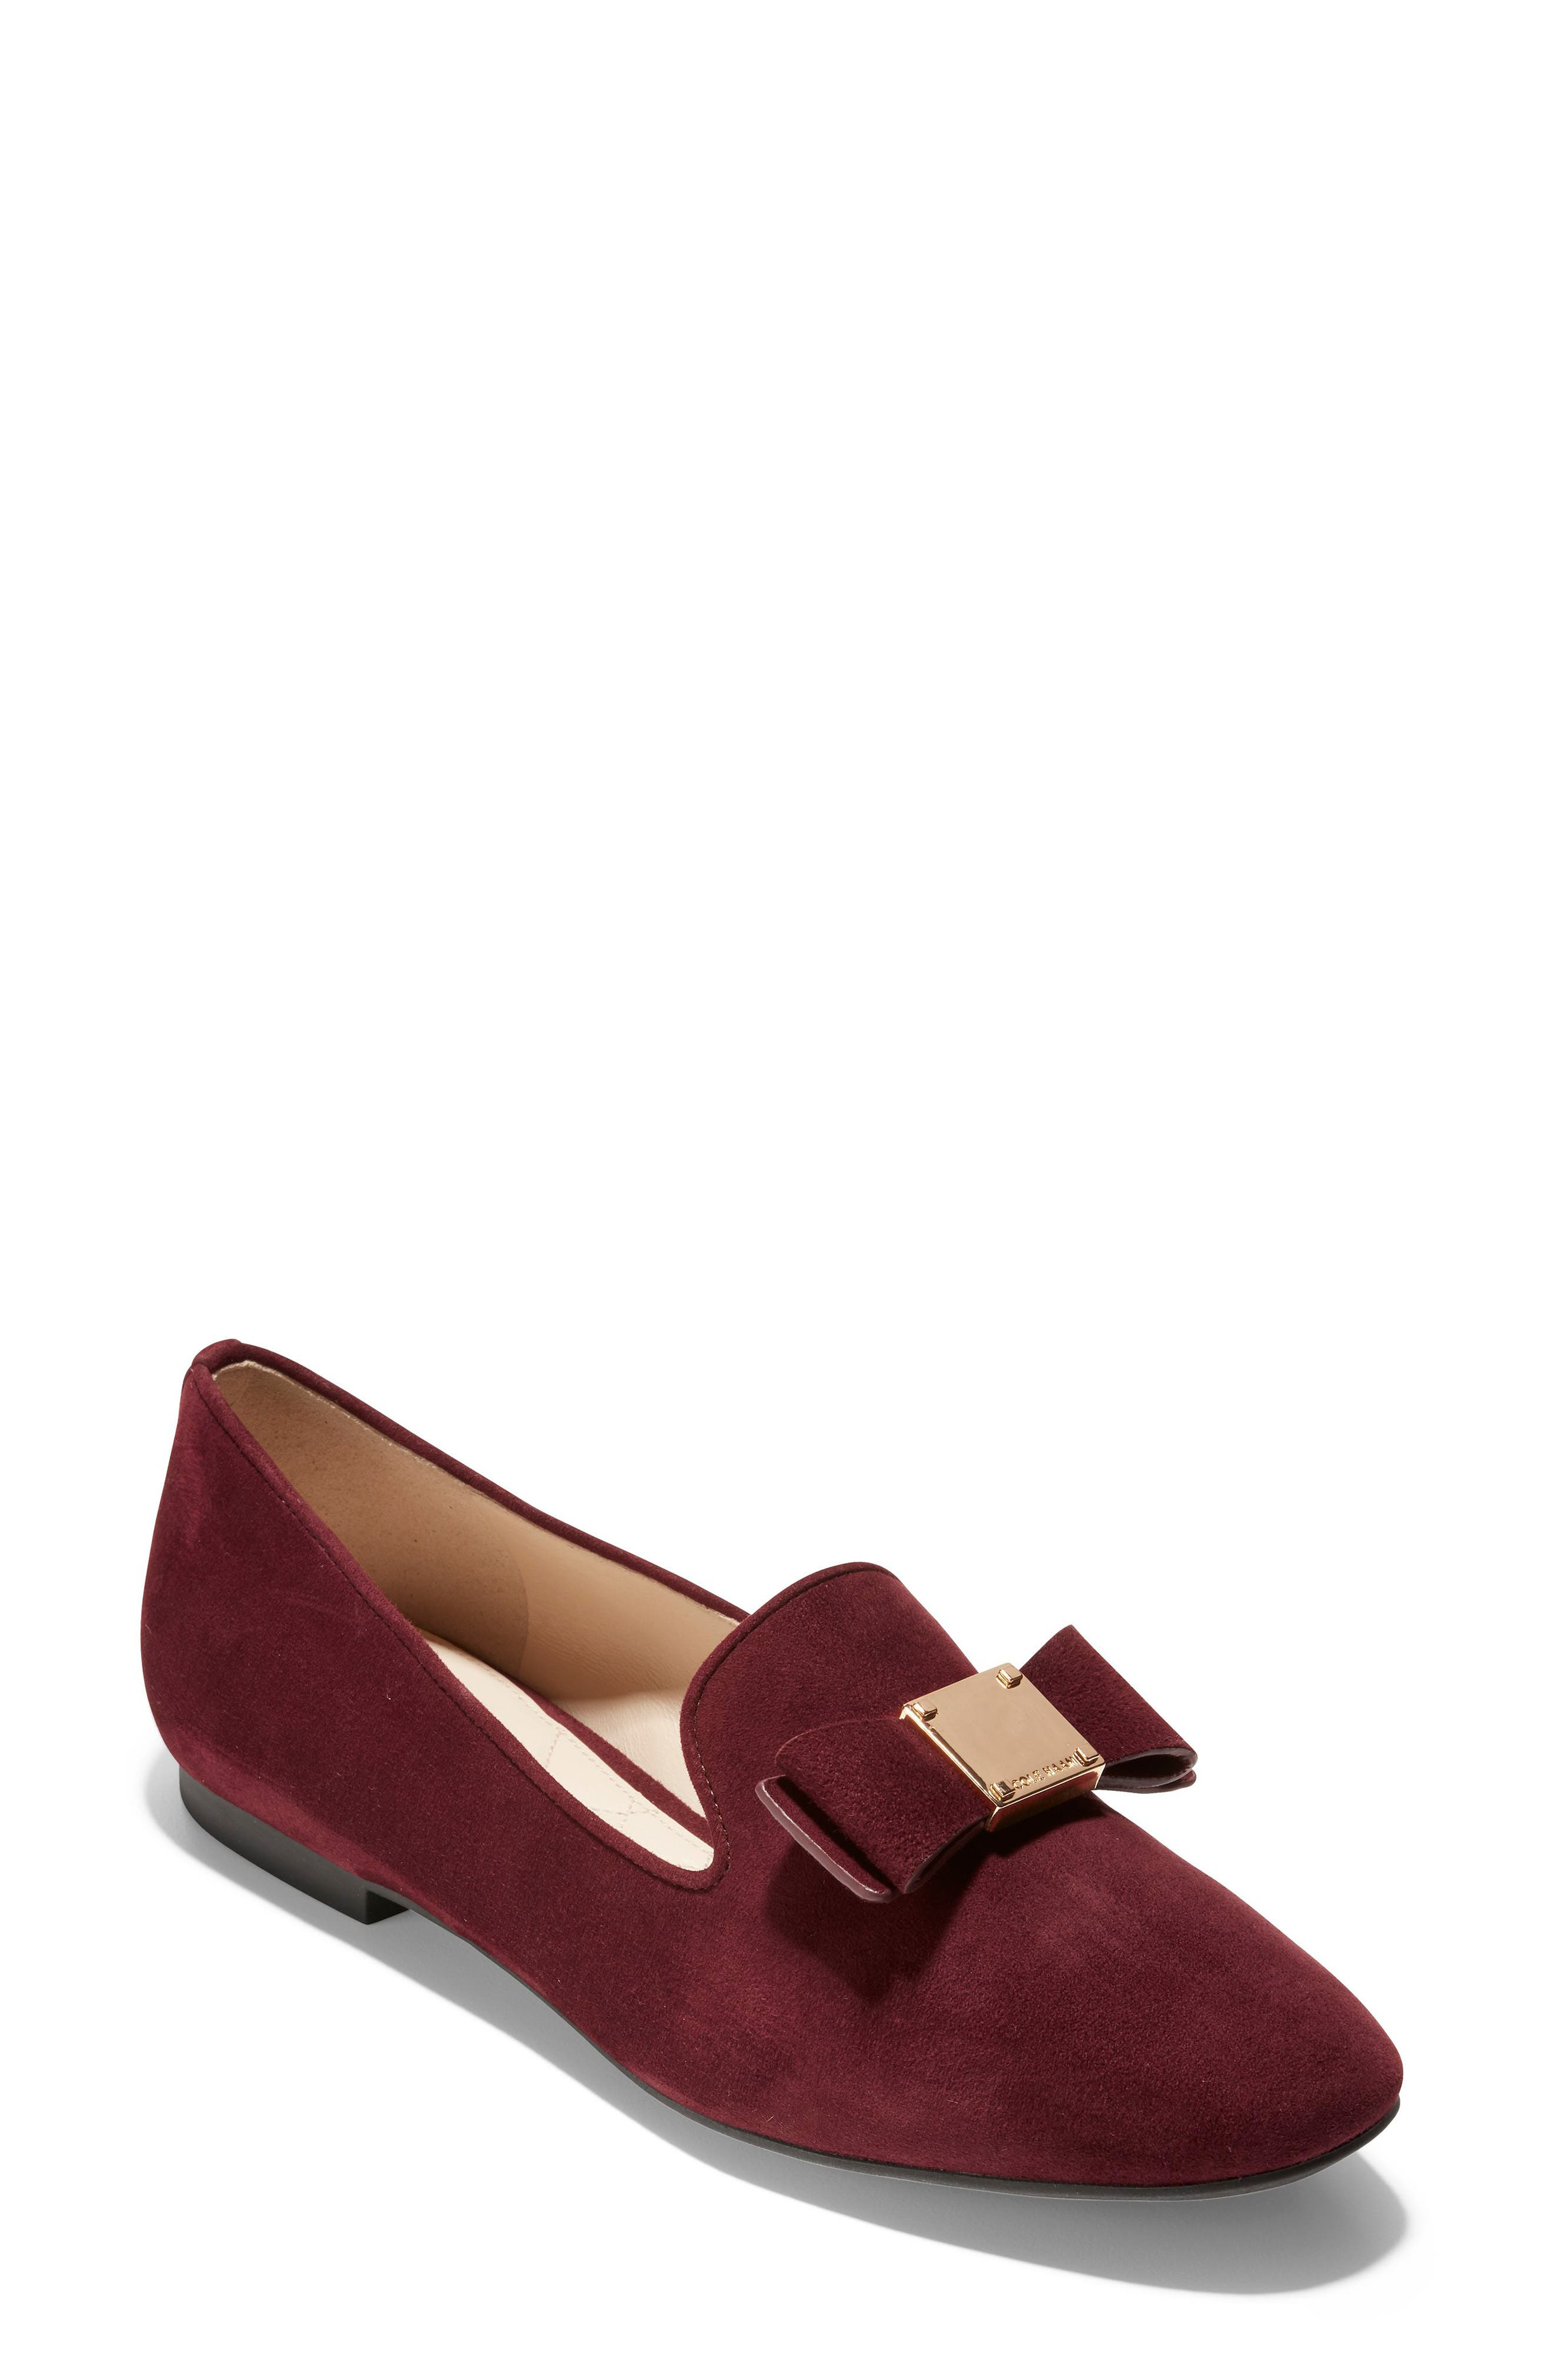 Tali Bow Loafer,                         Main,                         color, 605